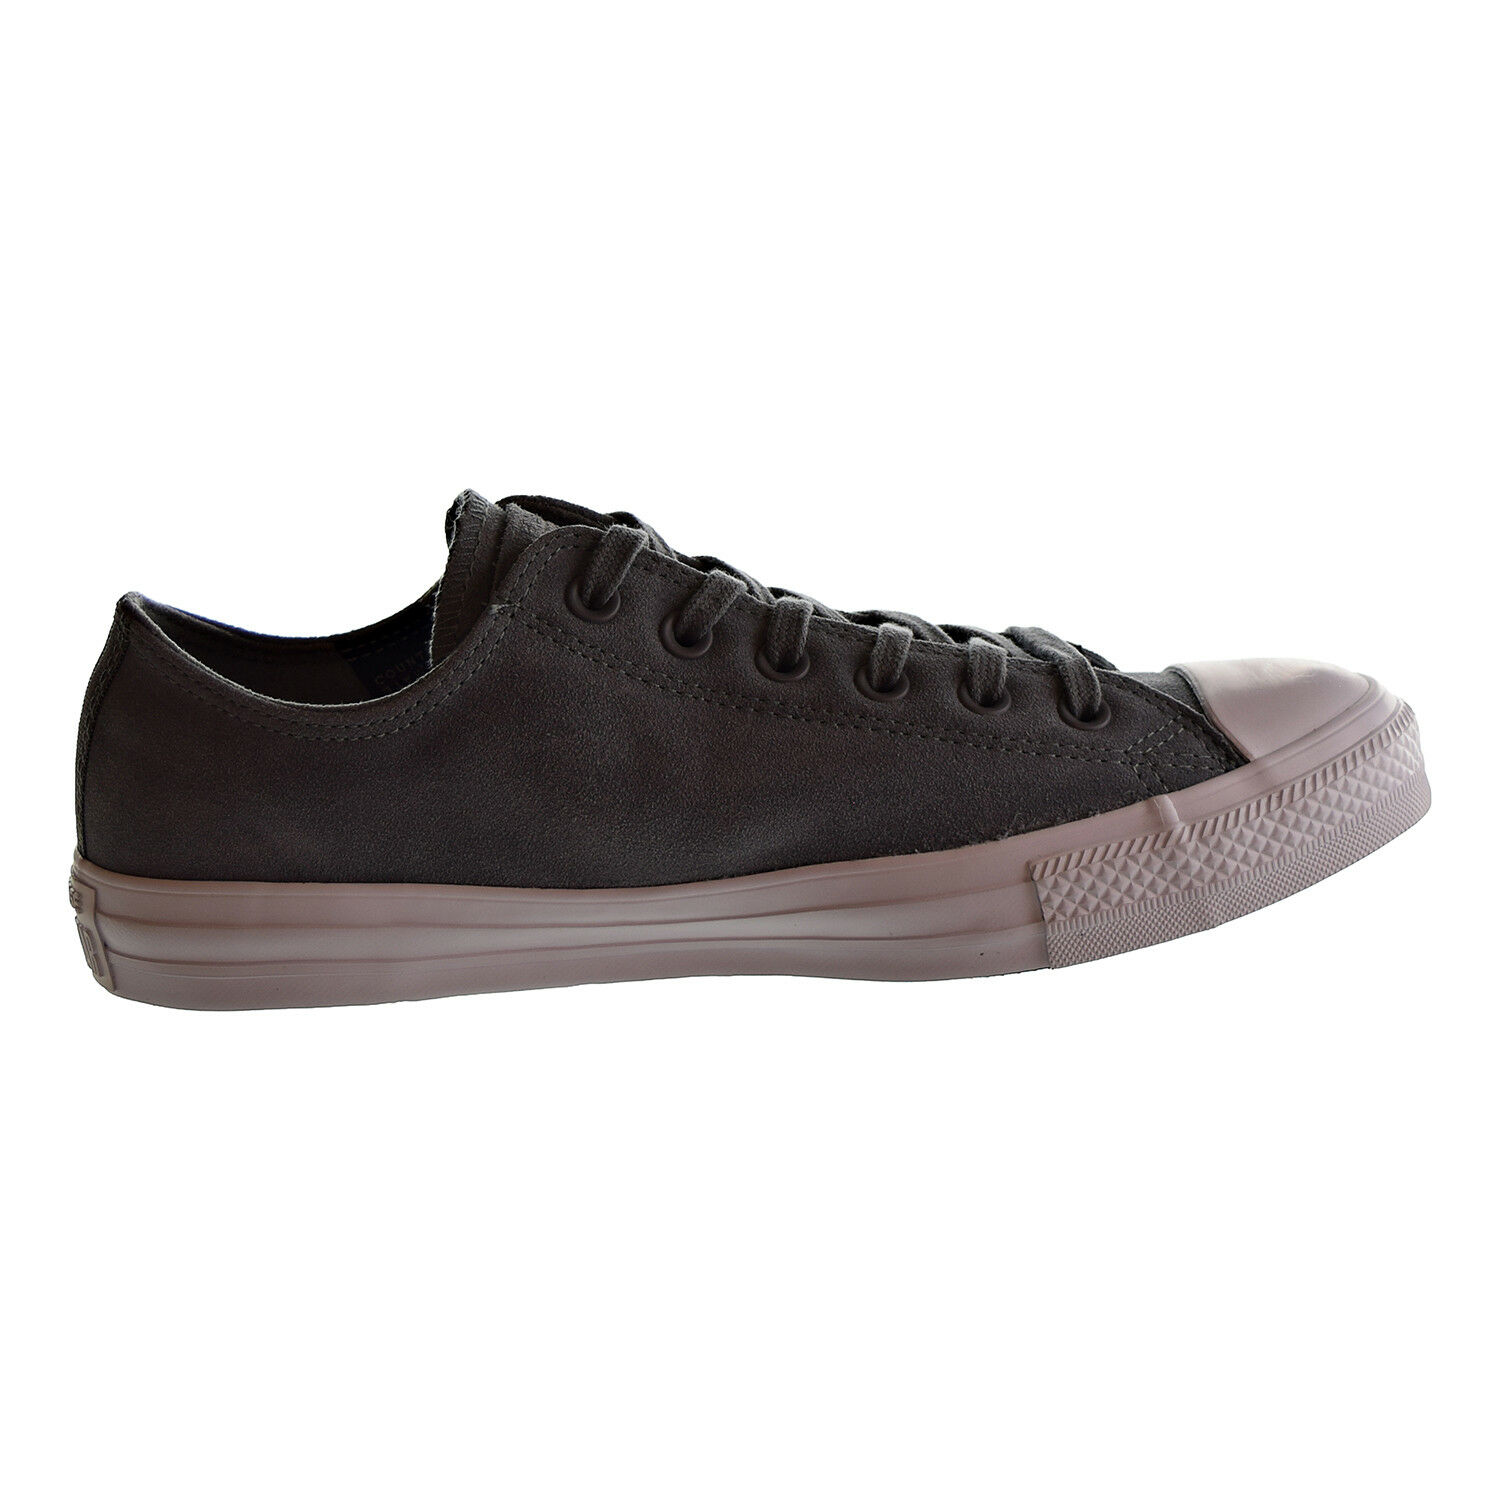 Converse Chuck Taylor All Star Ox Counter Climate Unisex Shoes Cool Grey 157600c